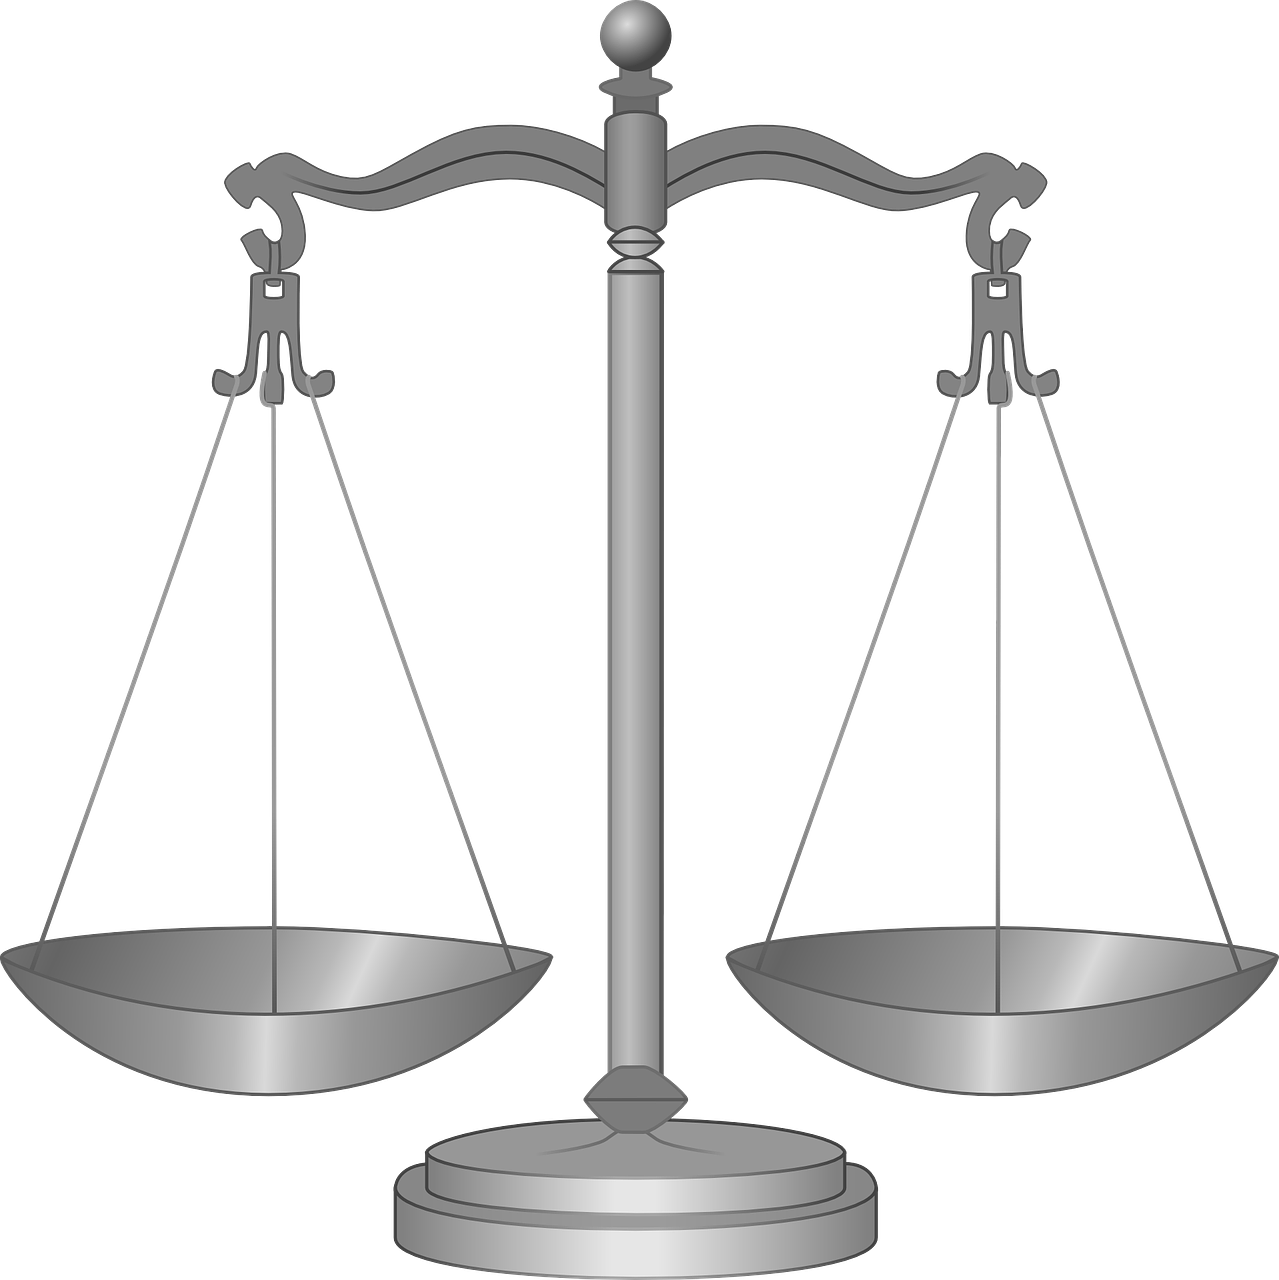 Drawing of scales of justice